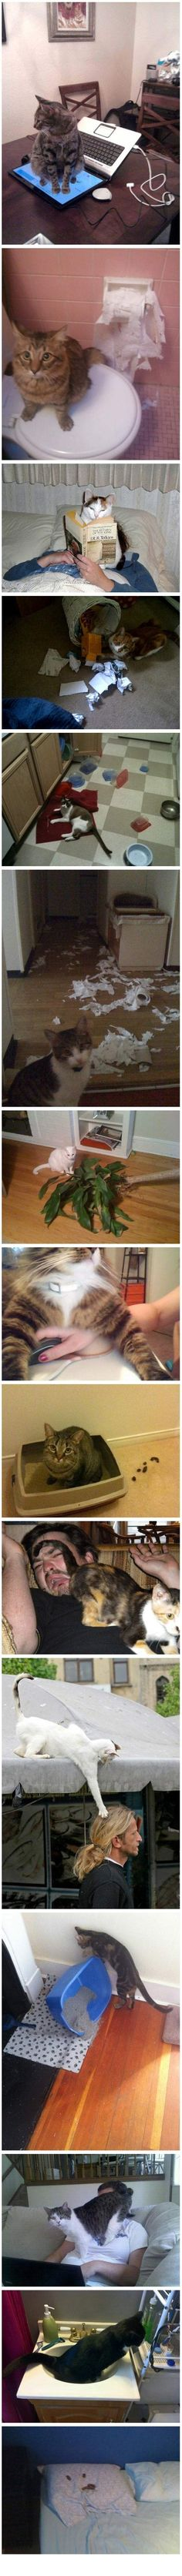 16 Pictures That Prove Cats Don't Give a Crap